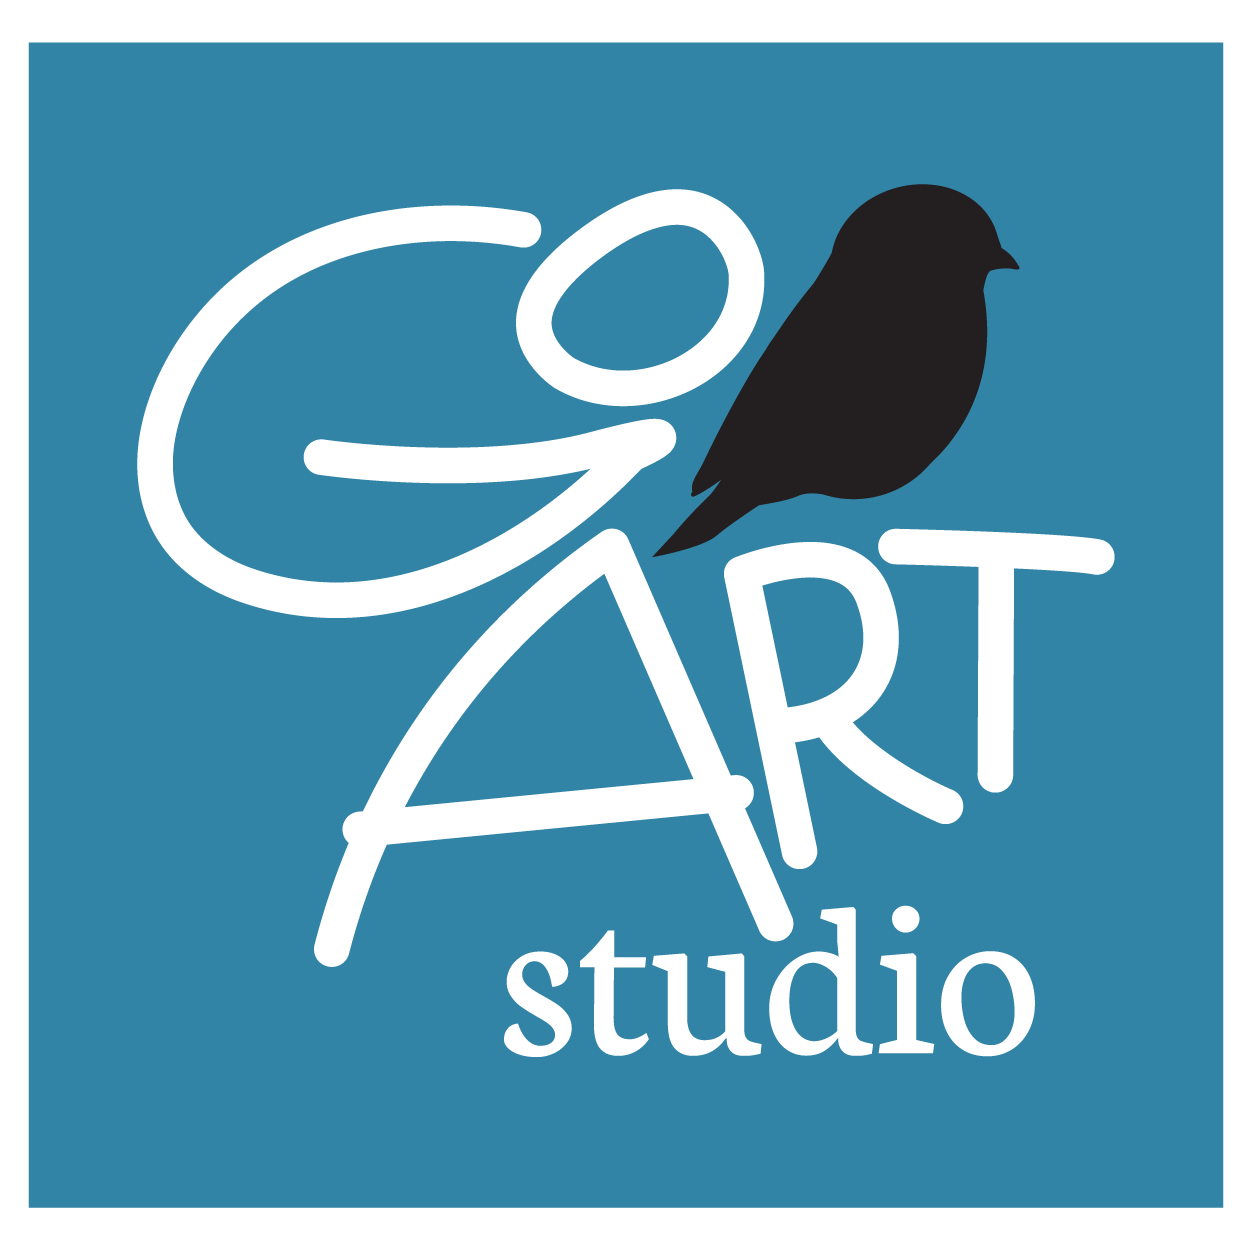 GO ART STUDIO